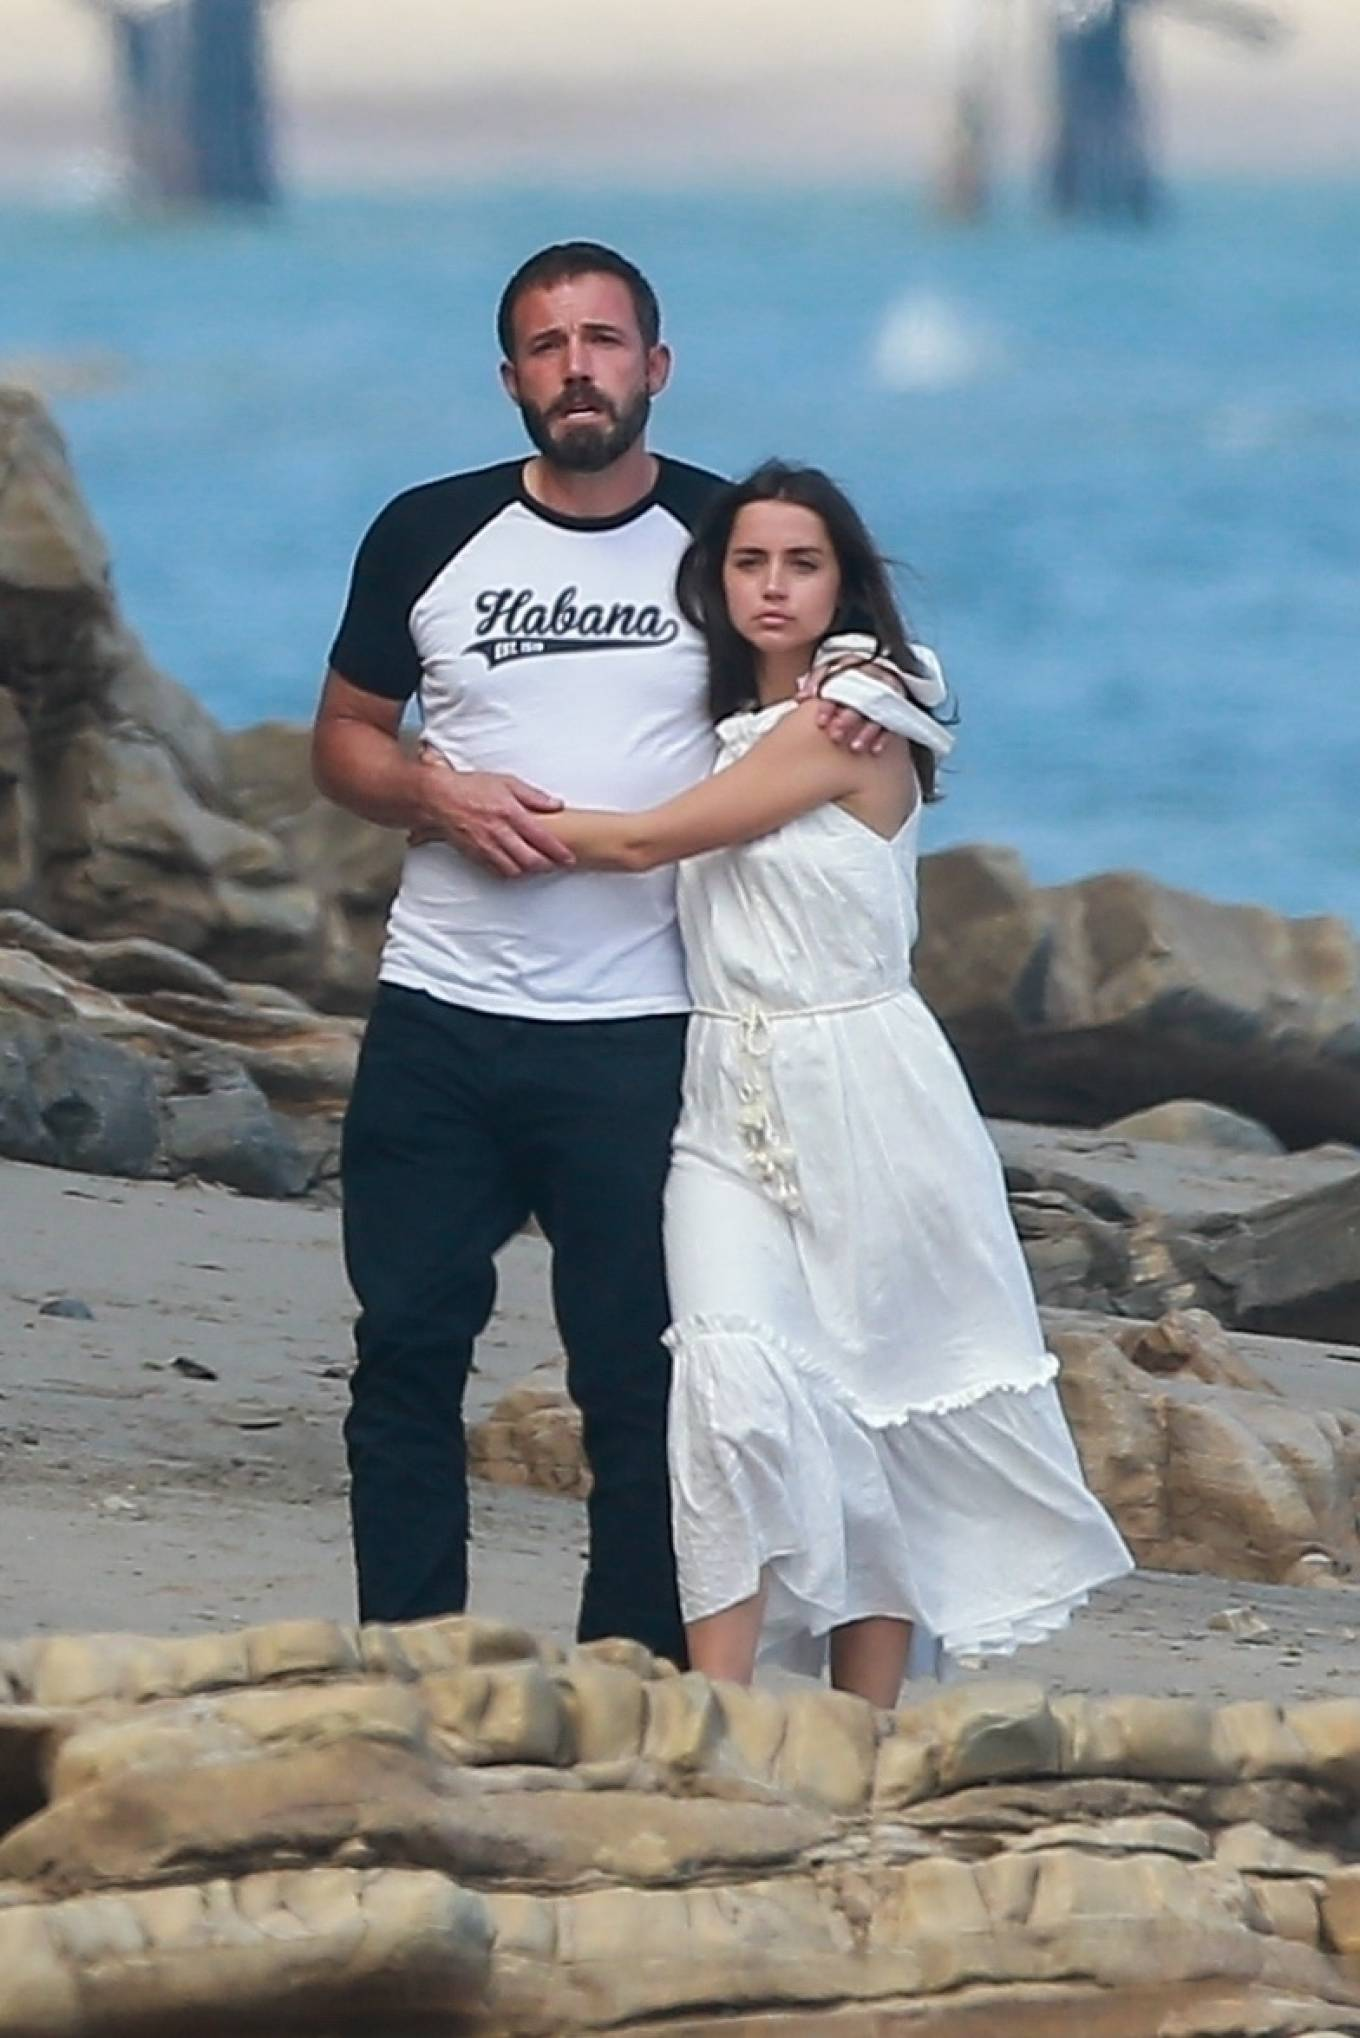 Ana De Armas and Ben Affleck - Spotted with friends on the beach in Malibu